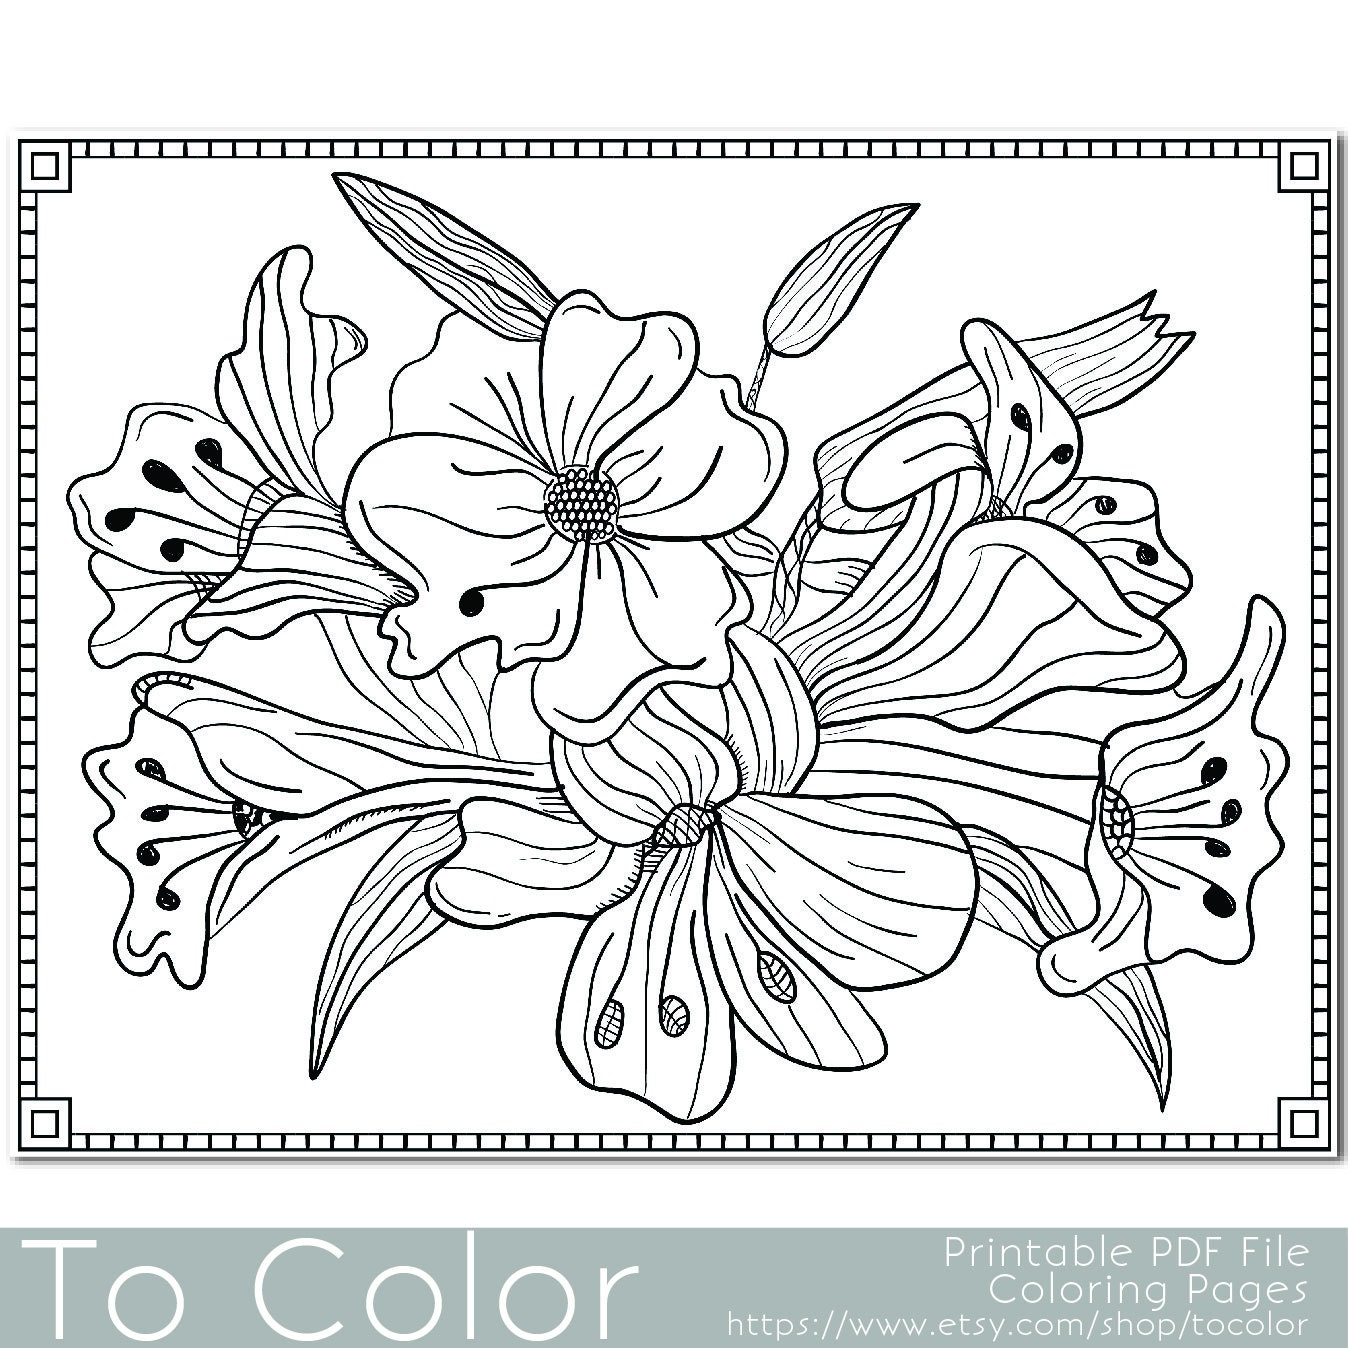 Flower lilies floral coloring page for adults pdf jpg for Coloring pages adults pdf